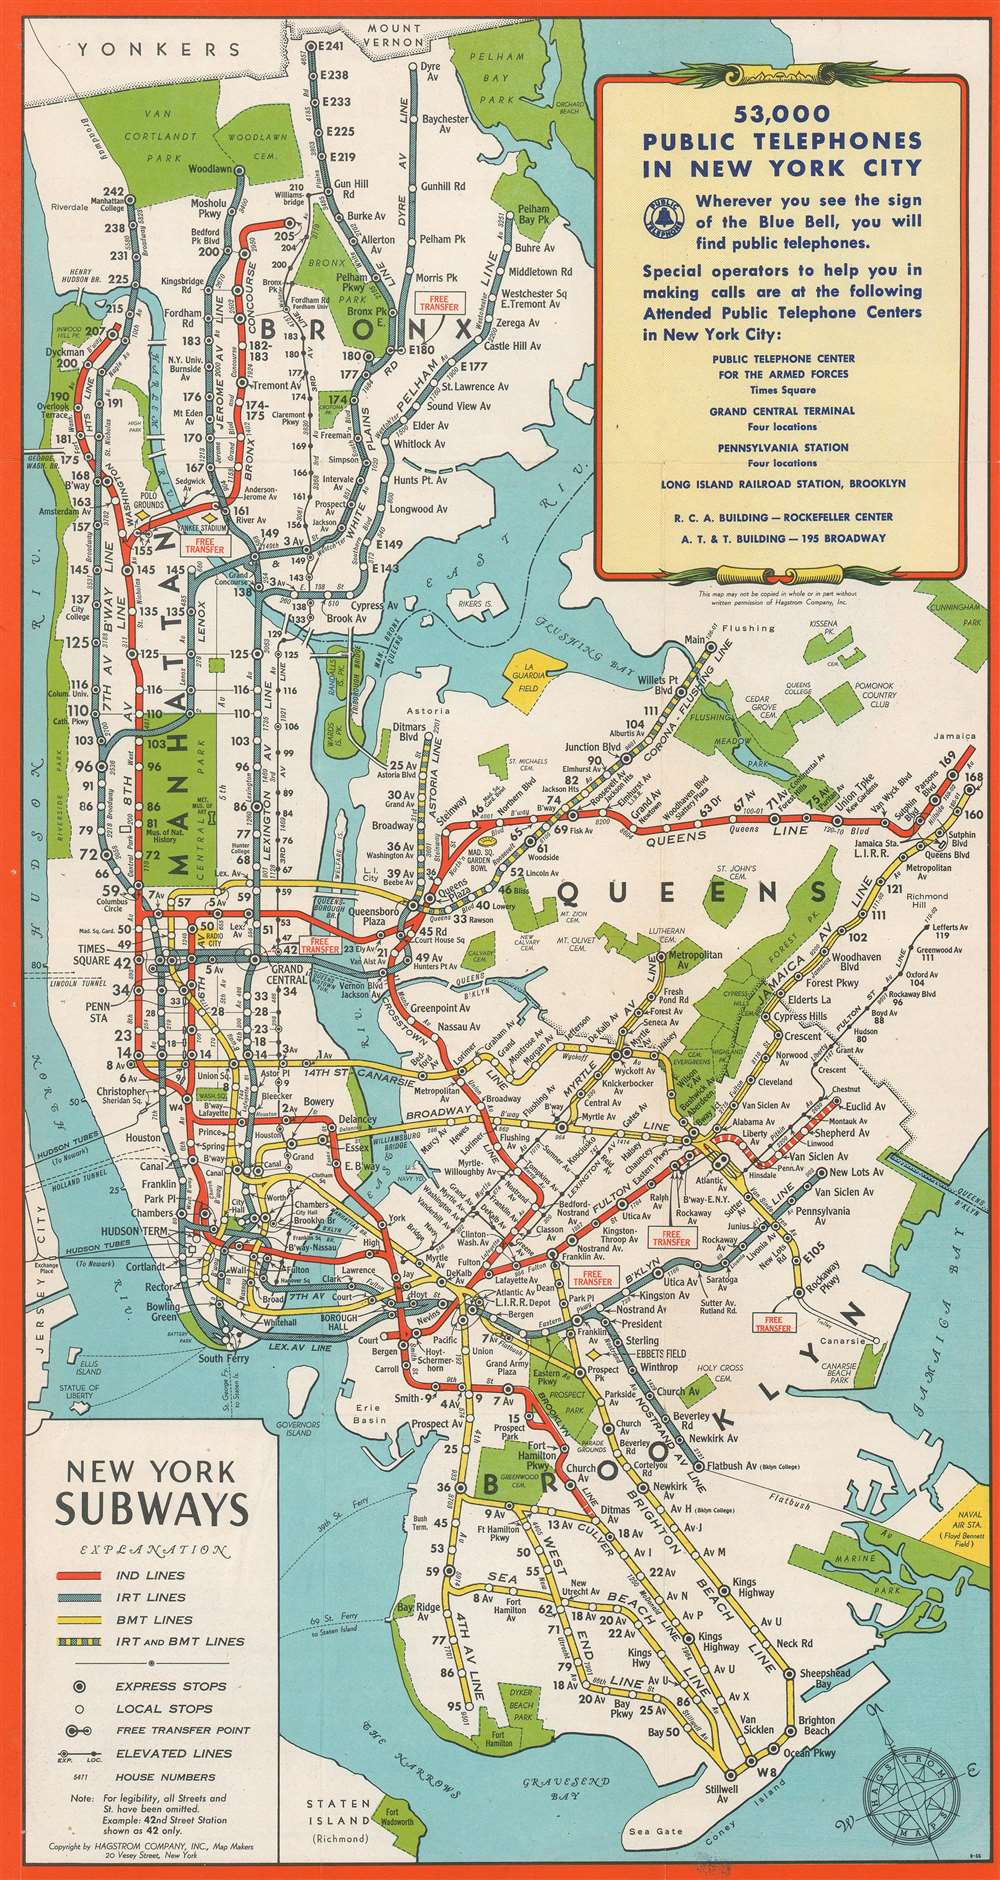 1944 Hagstrom Map of New York City Subway Lines for Military Personnel